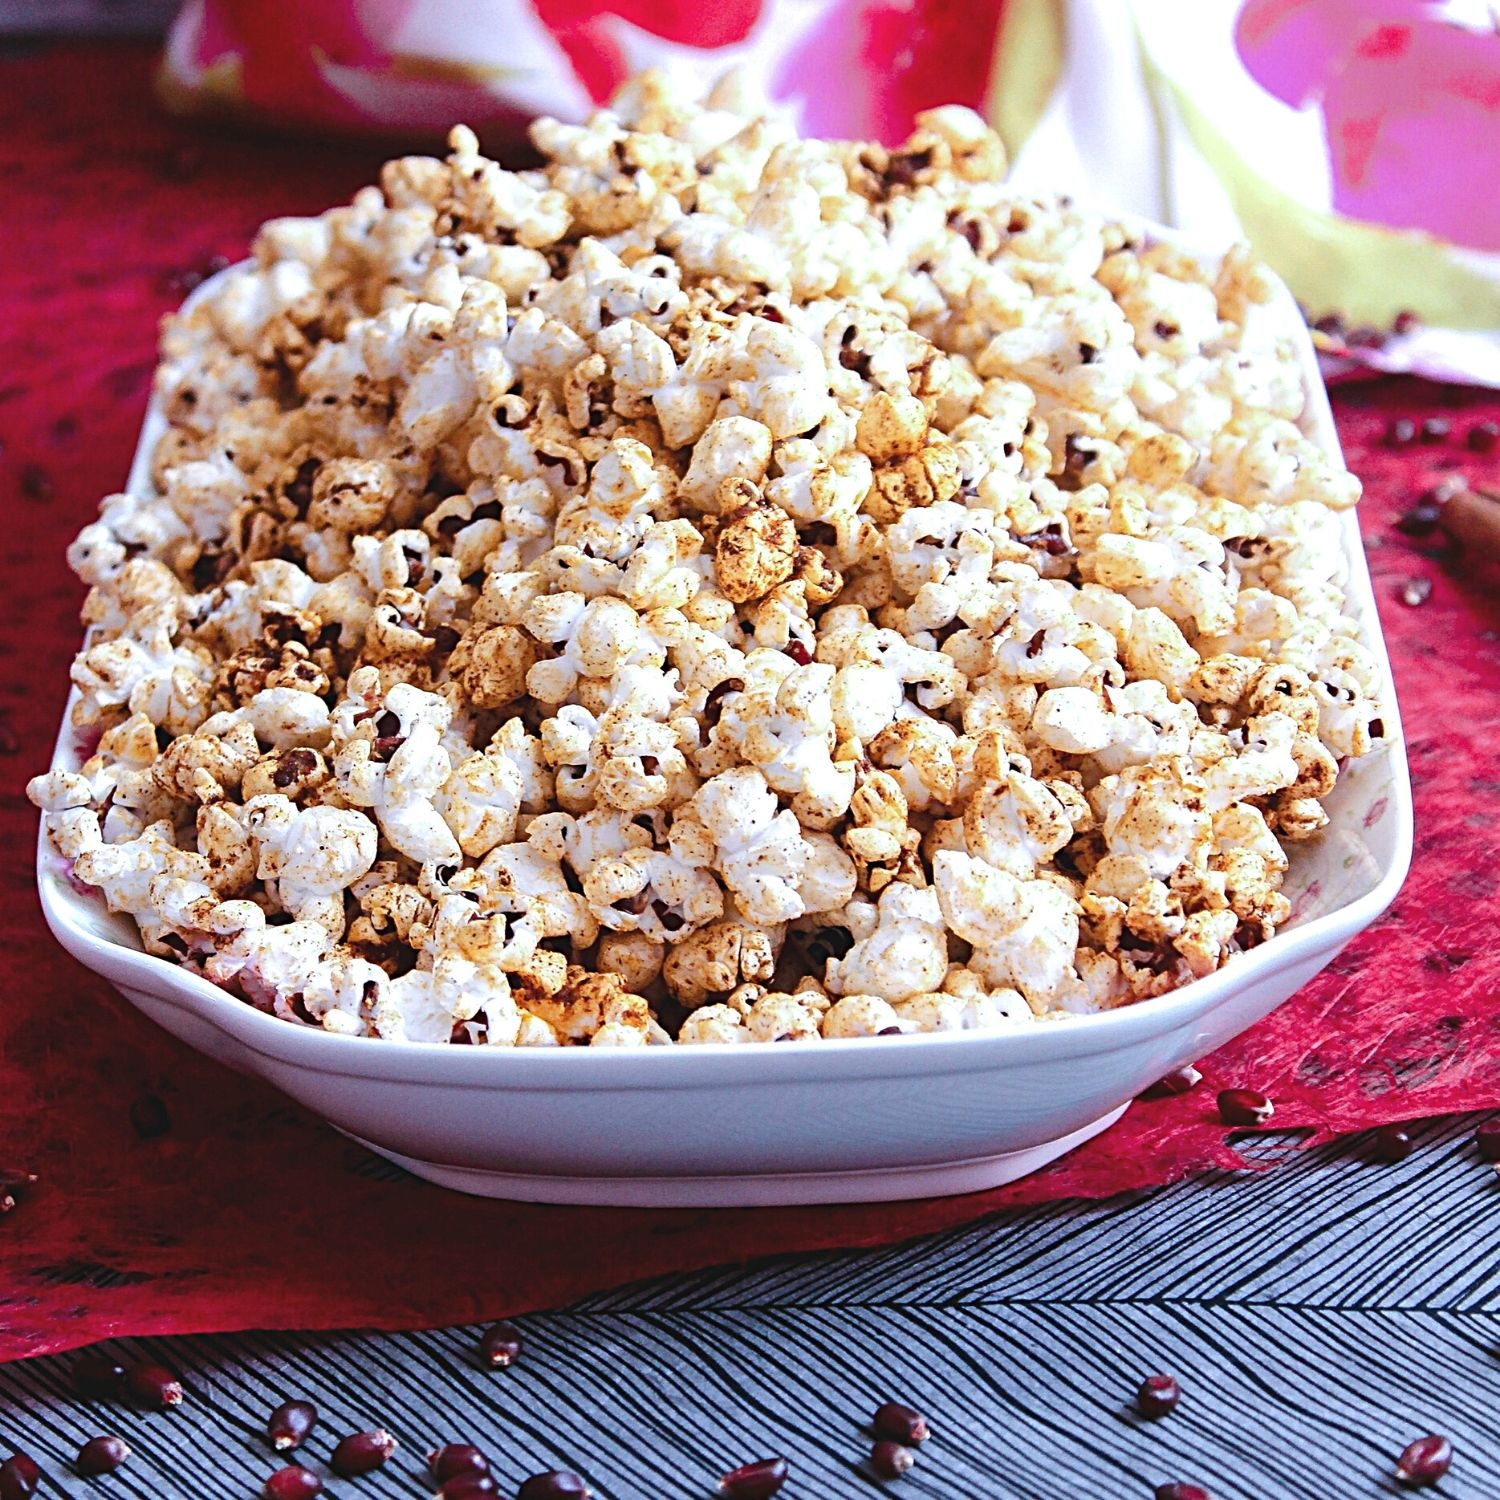 Best Homemade Popcorn with Sweet and Salty Popcorn Topping